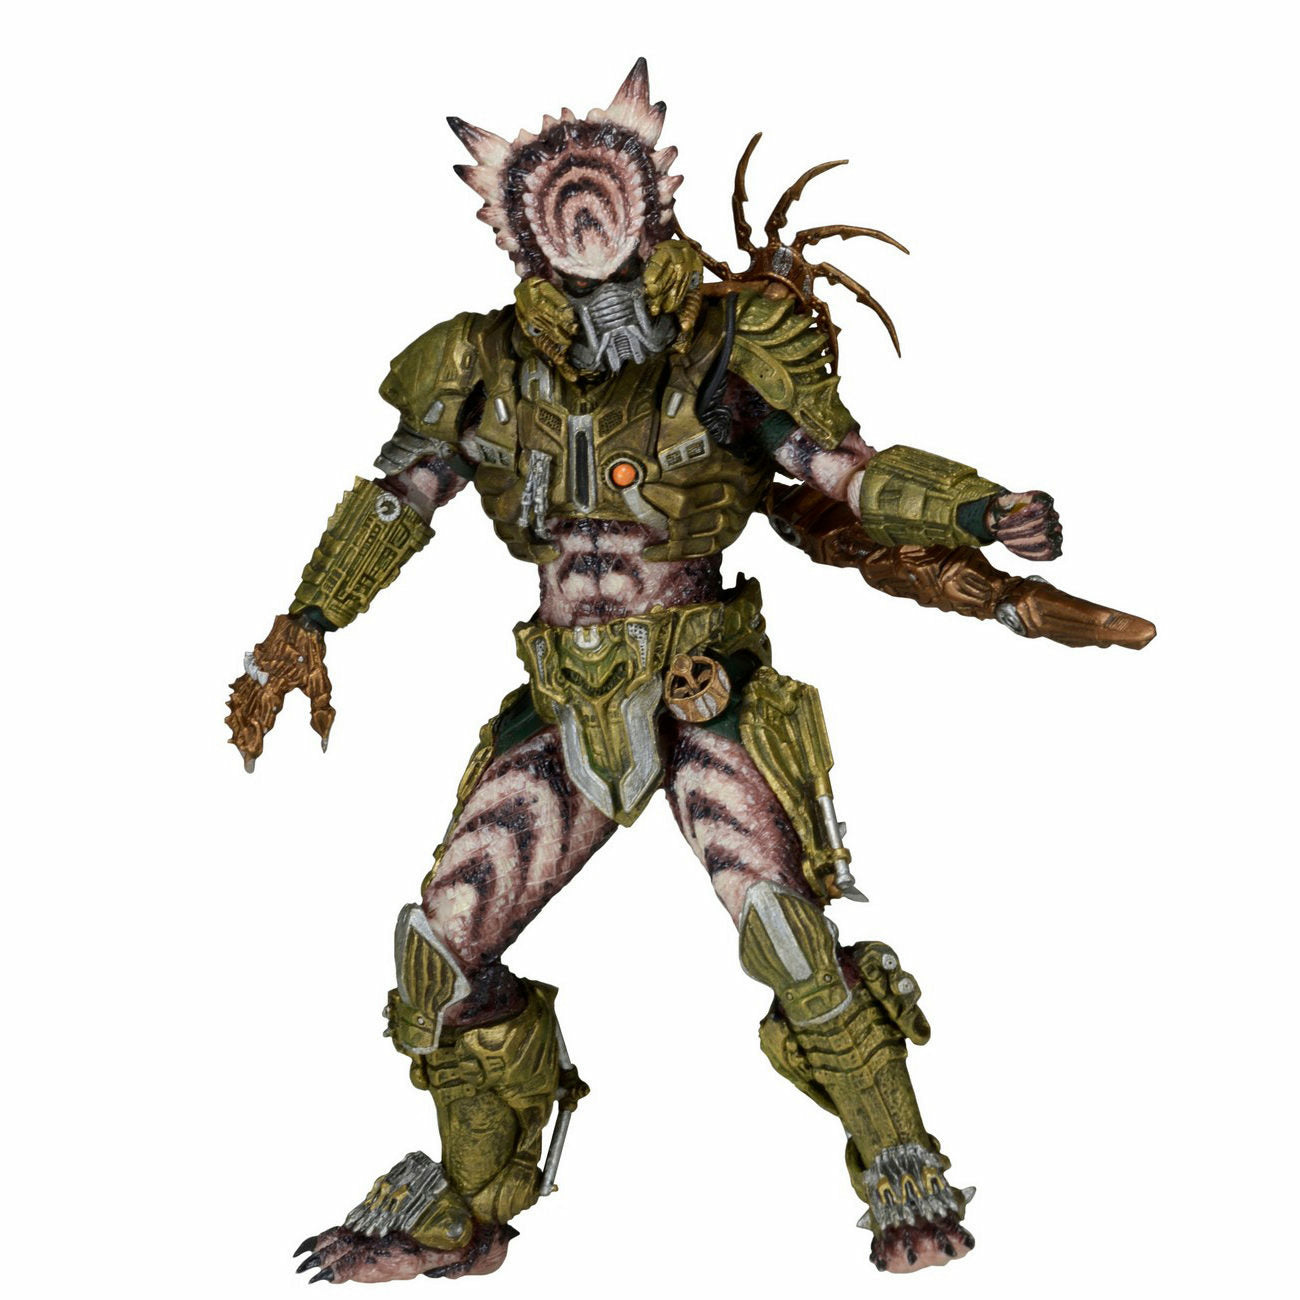 Predator: Series 16 Spiked Tail Predator 7 inch Action Figure